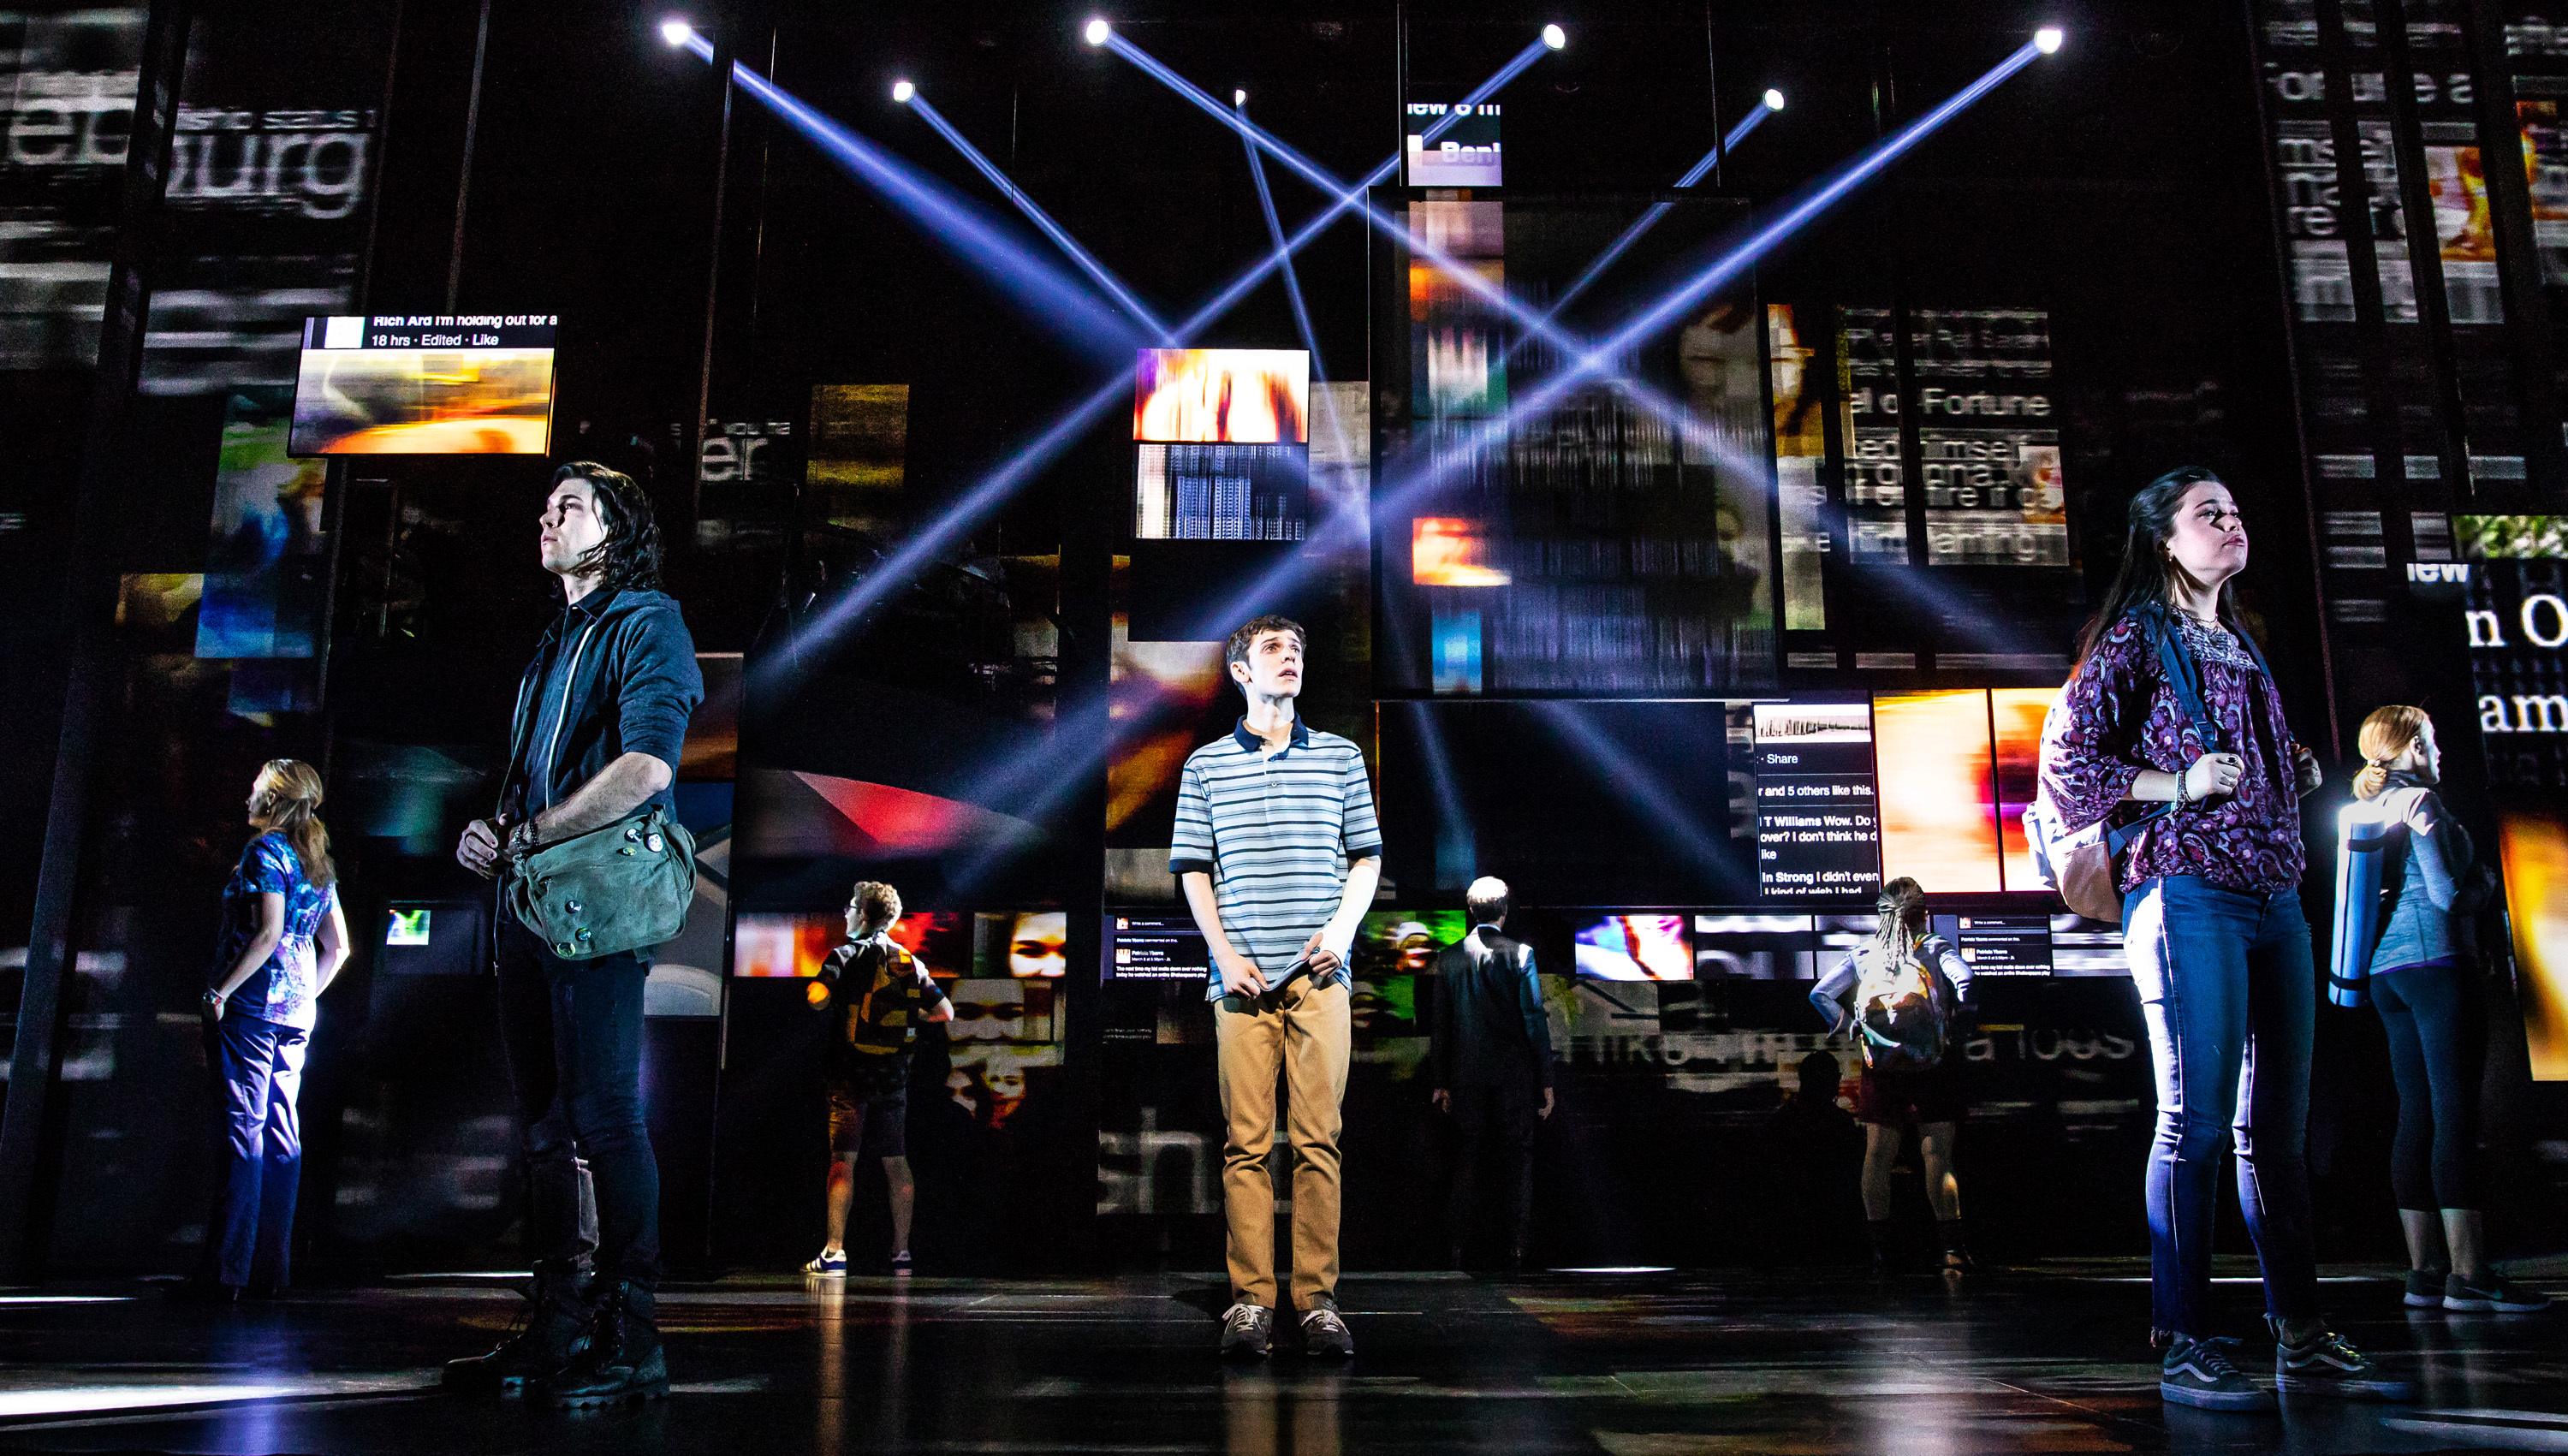 You can score cheap tickets to 'Dear Evan Hansen' via a digital lottery